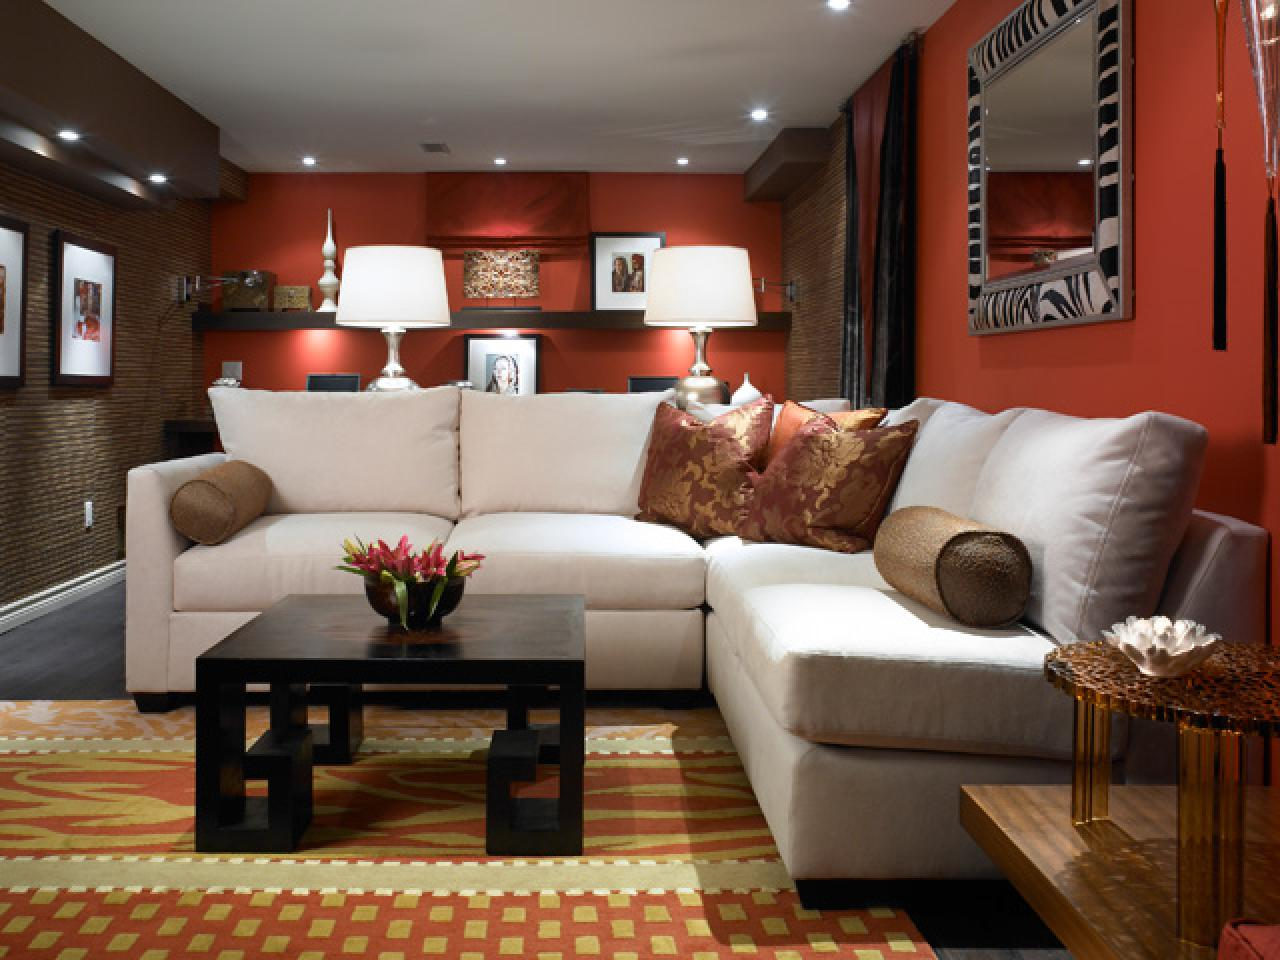 Hunky Interior Basement Decorating Ideas With Sectional Sofa and Black Coffee Table